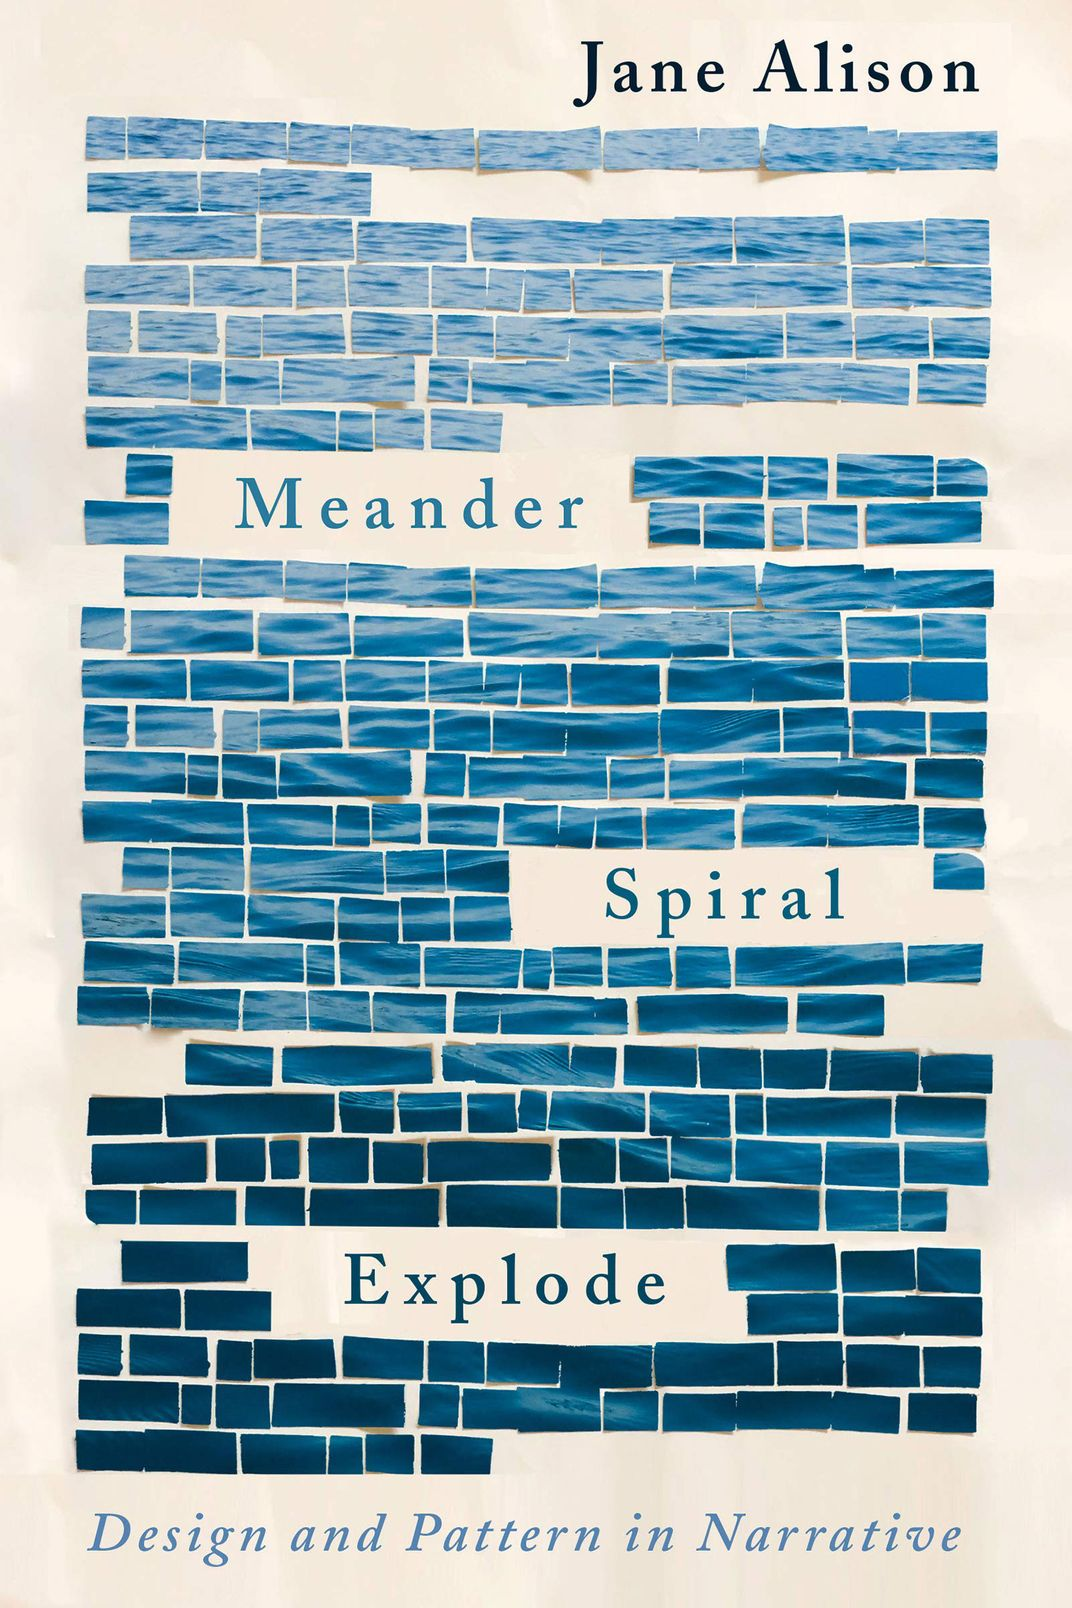 Meander, Spiral, Explode by Jane Alison